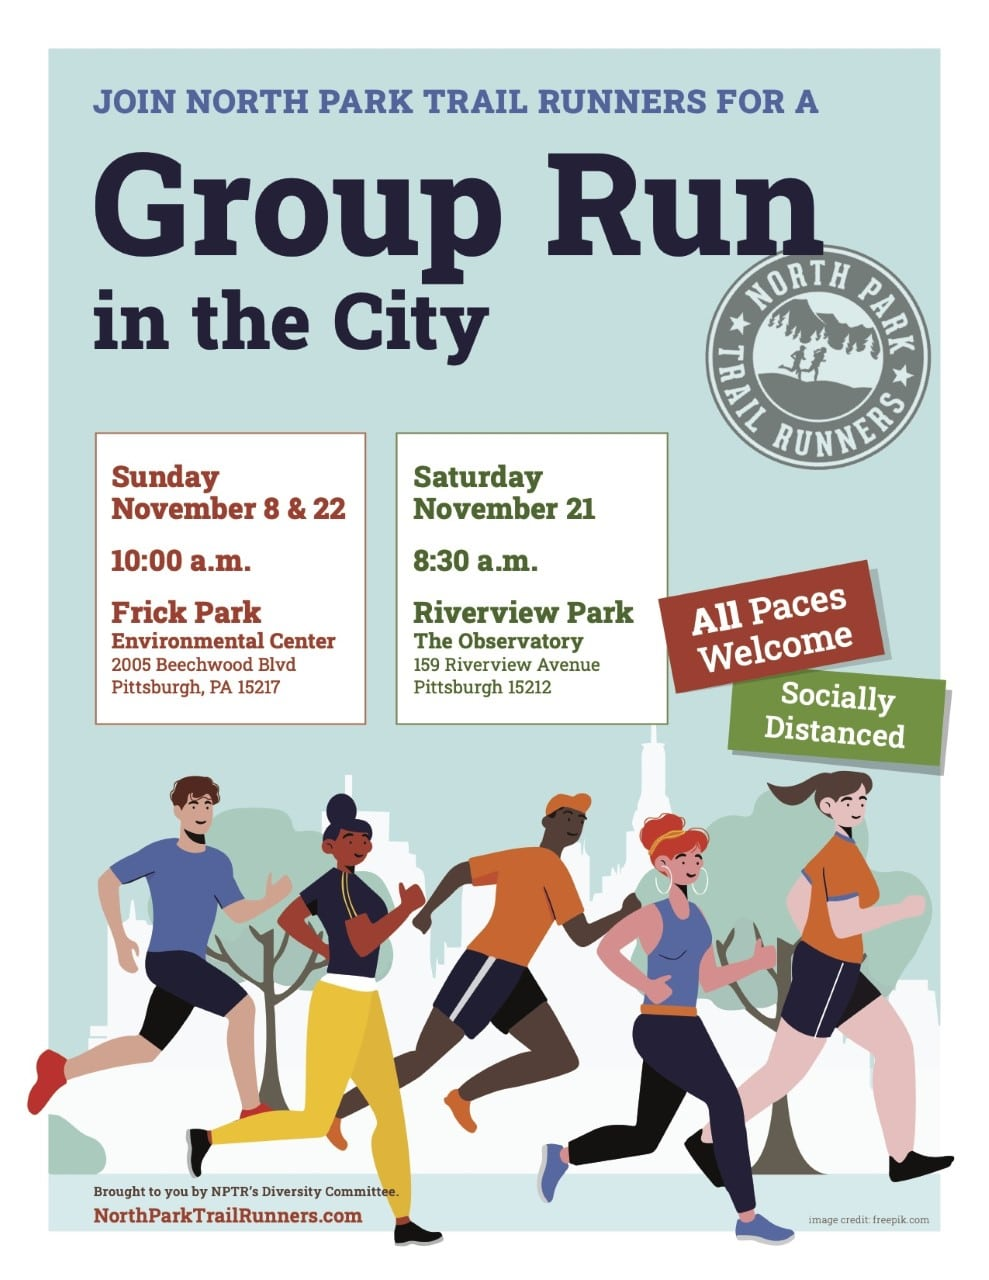 Flyer for North Park Trail Runners' Group Run in the City